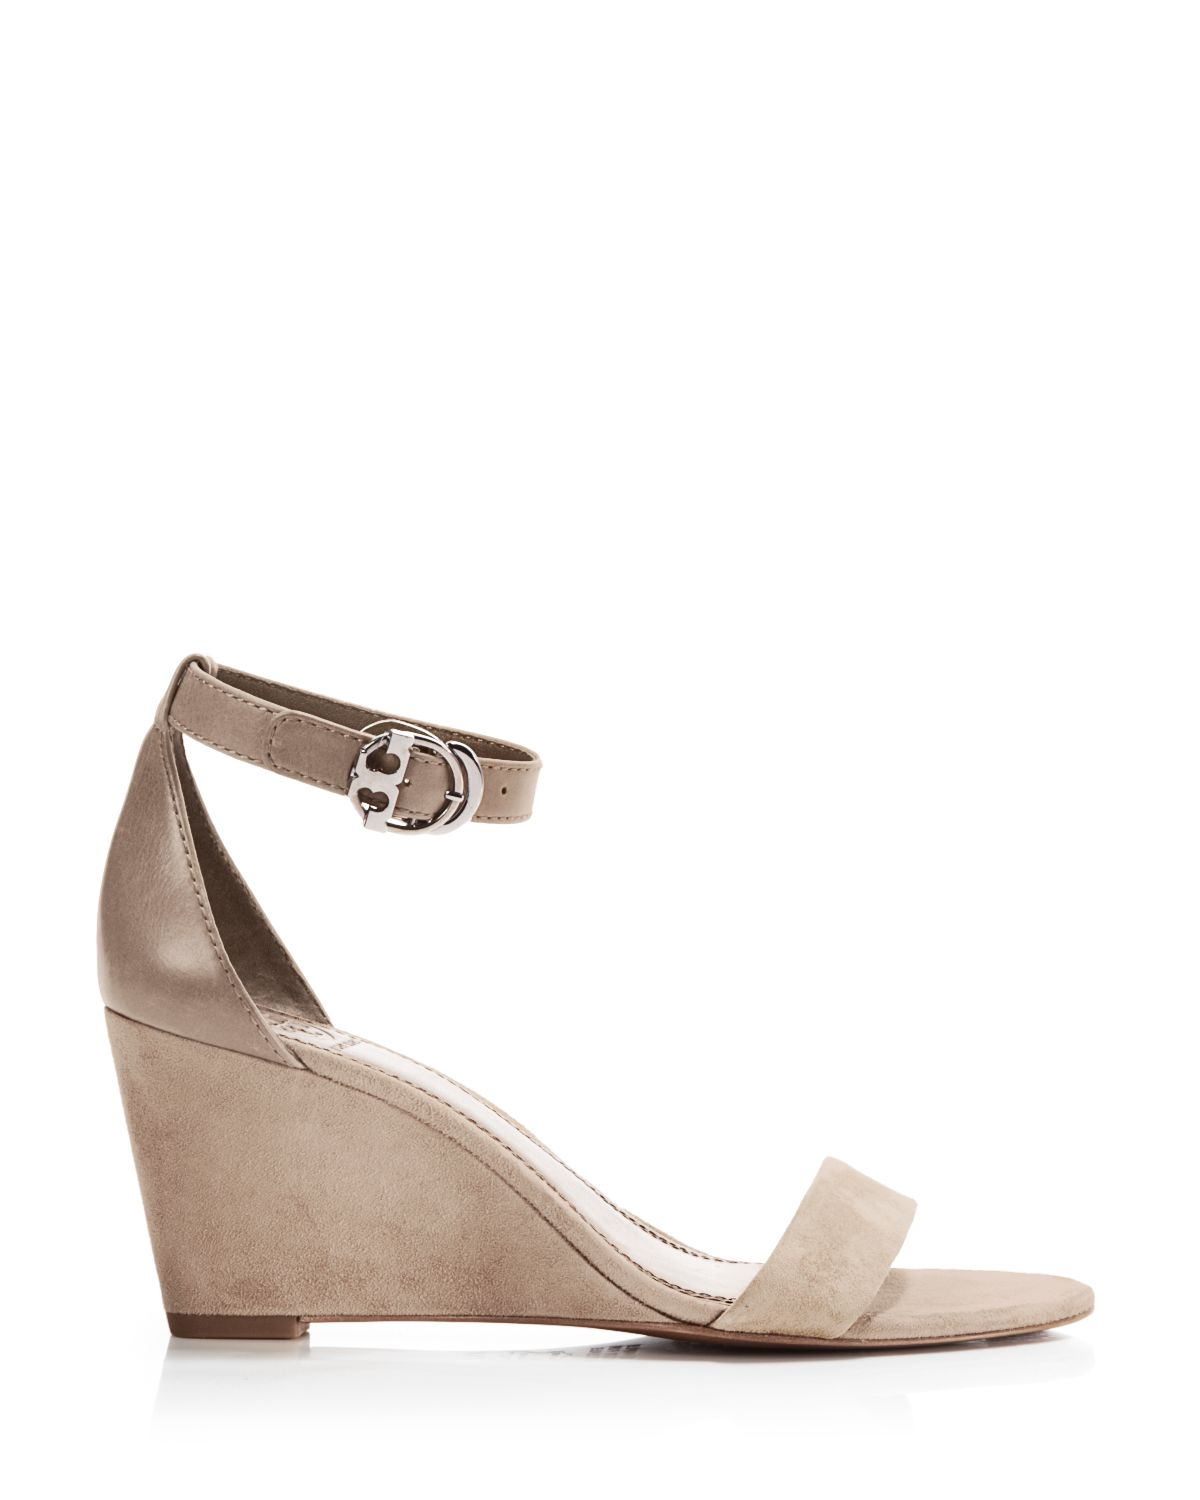 1d4275a573b8b Lyst - Tory Burch Ankle Strap Wedge Sandals - Grant Suede .